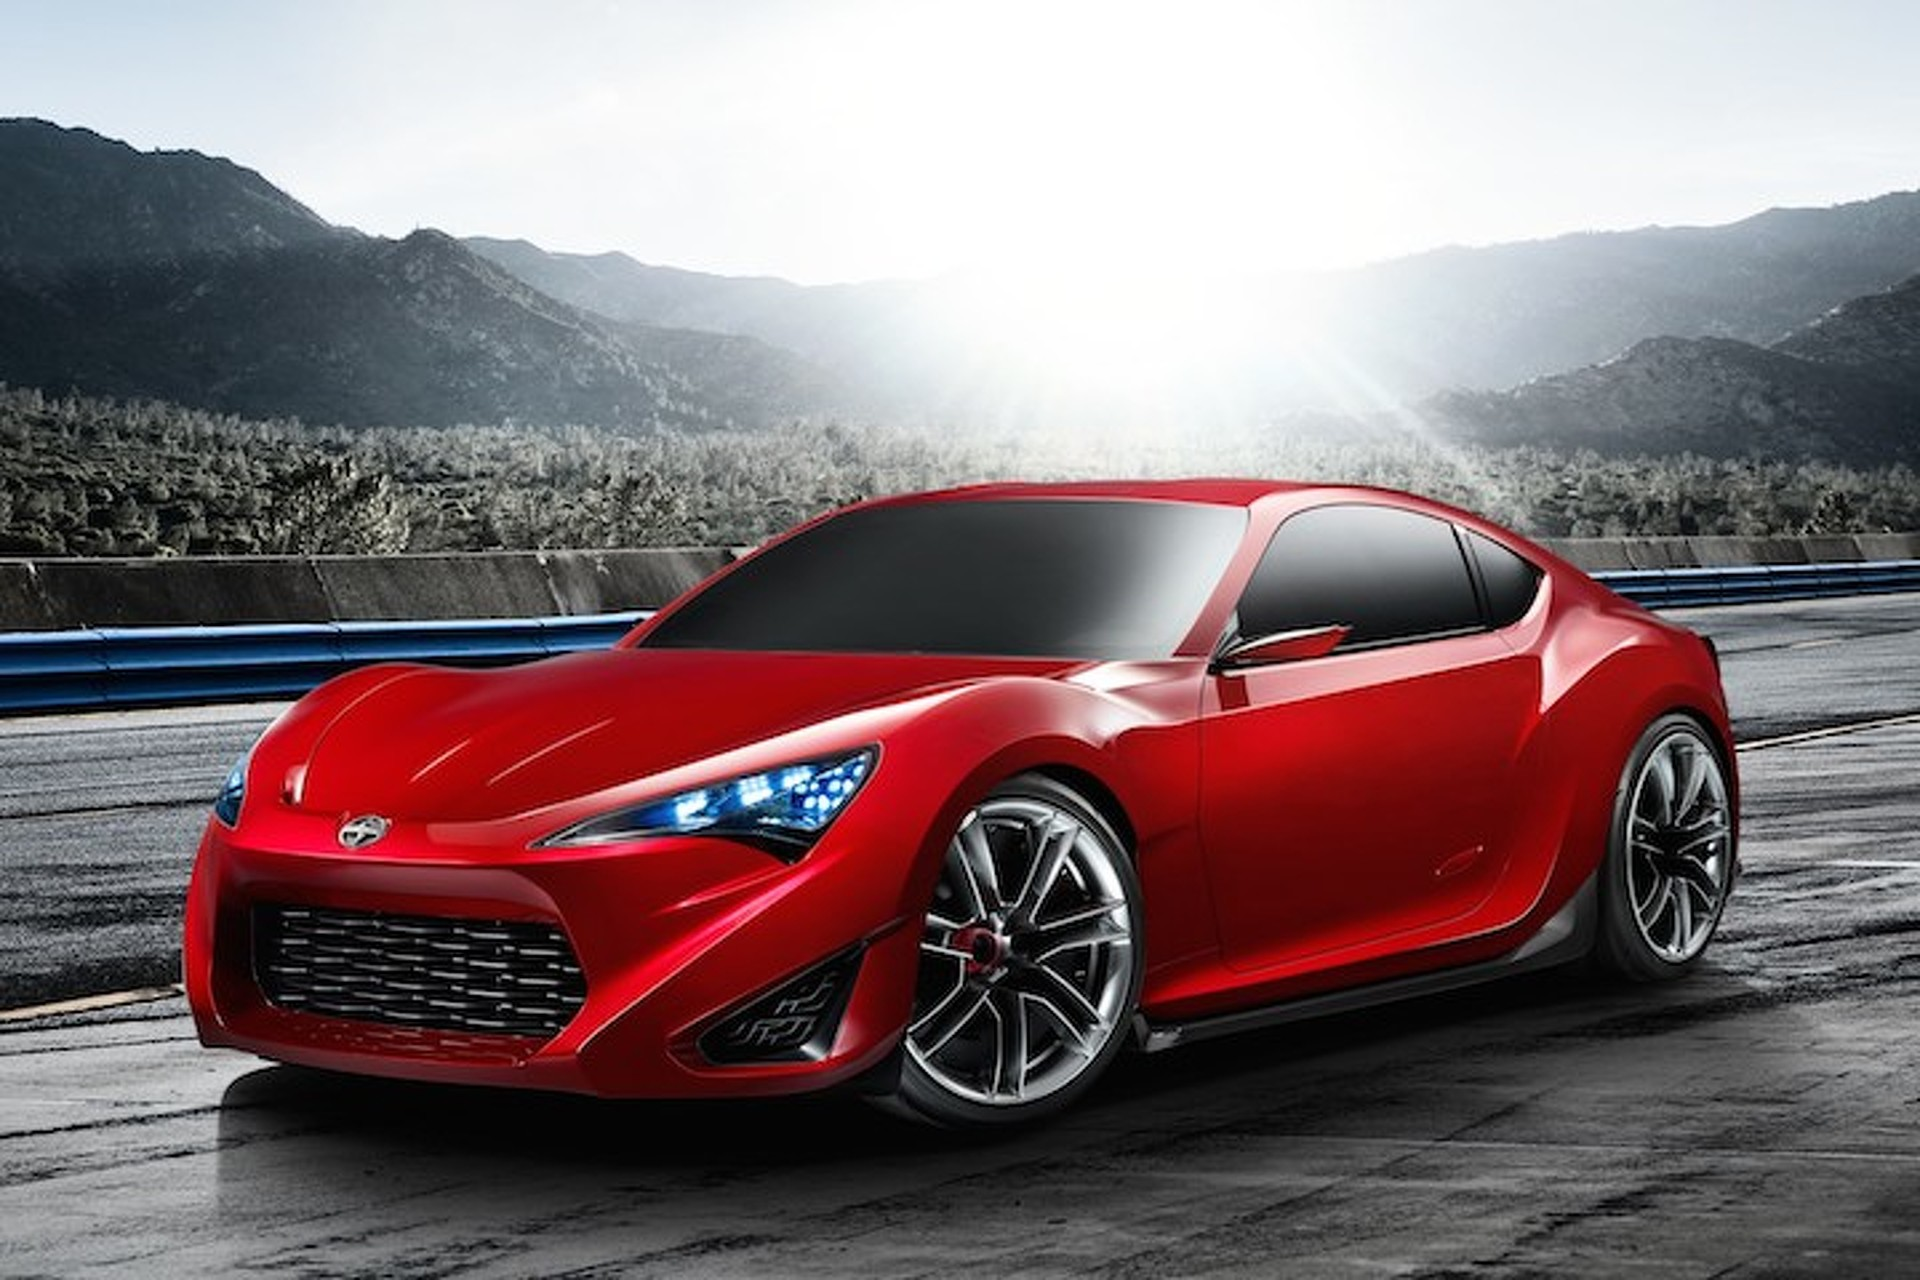 scion frs hybrid isn't happening says toyota